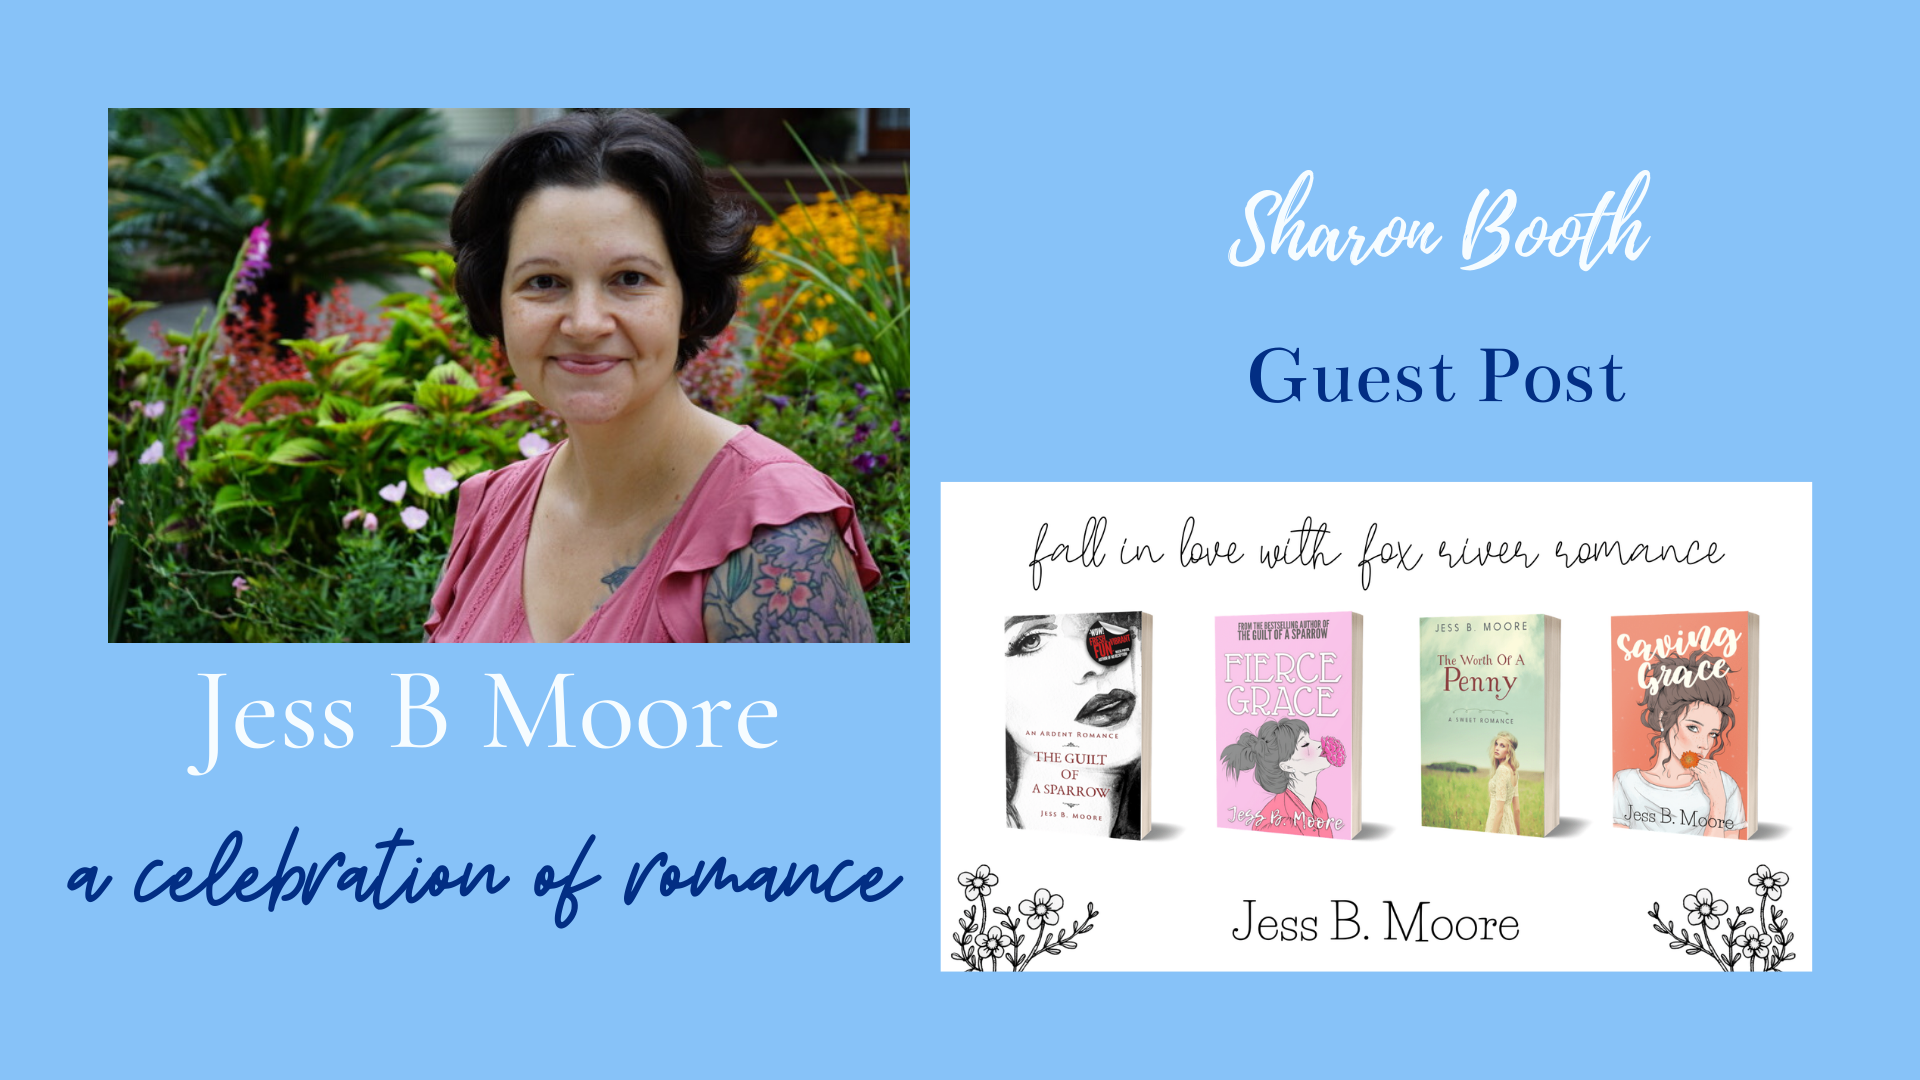 You are currently viewing A Celebration of Romance by Jess B Moore